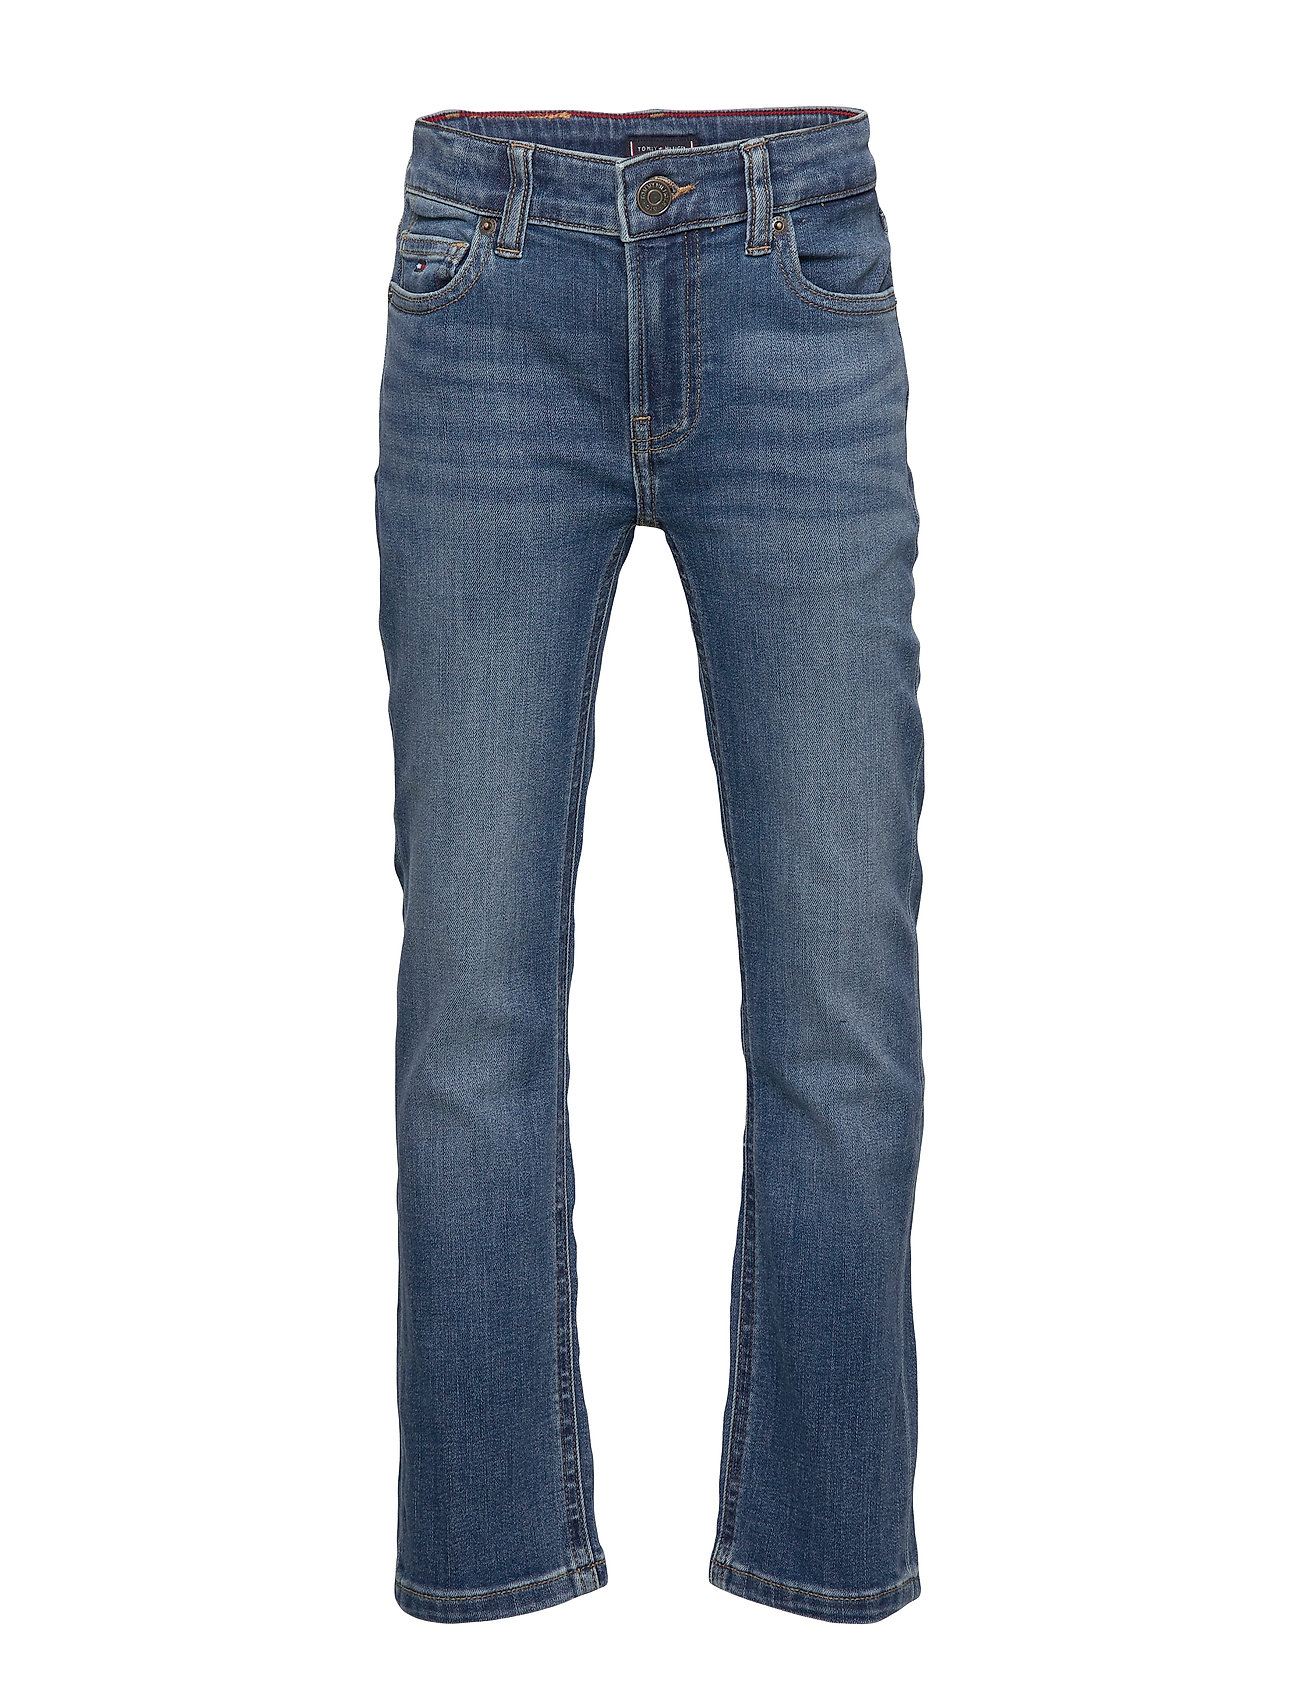 Tommy Hilfiger 1985 STRAIGHT OCMBST - OCEAN MID BLUE STRETCH